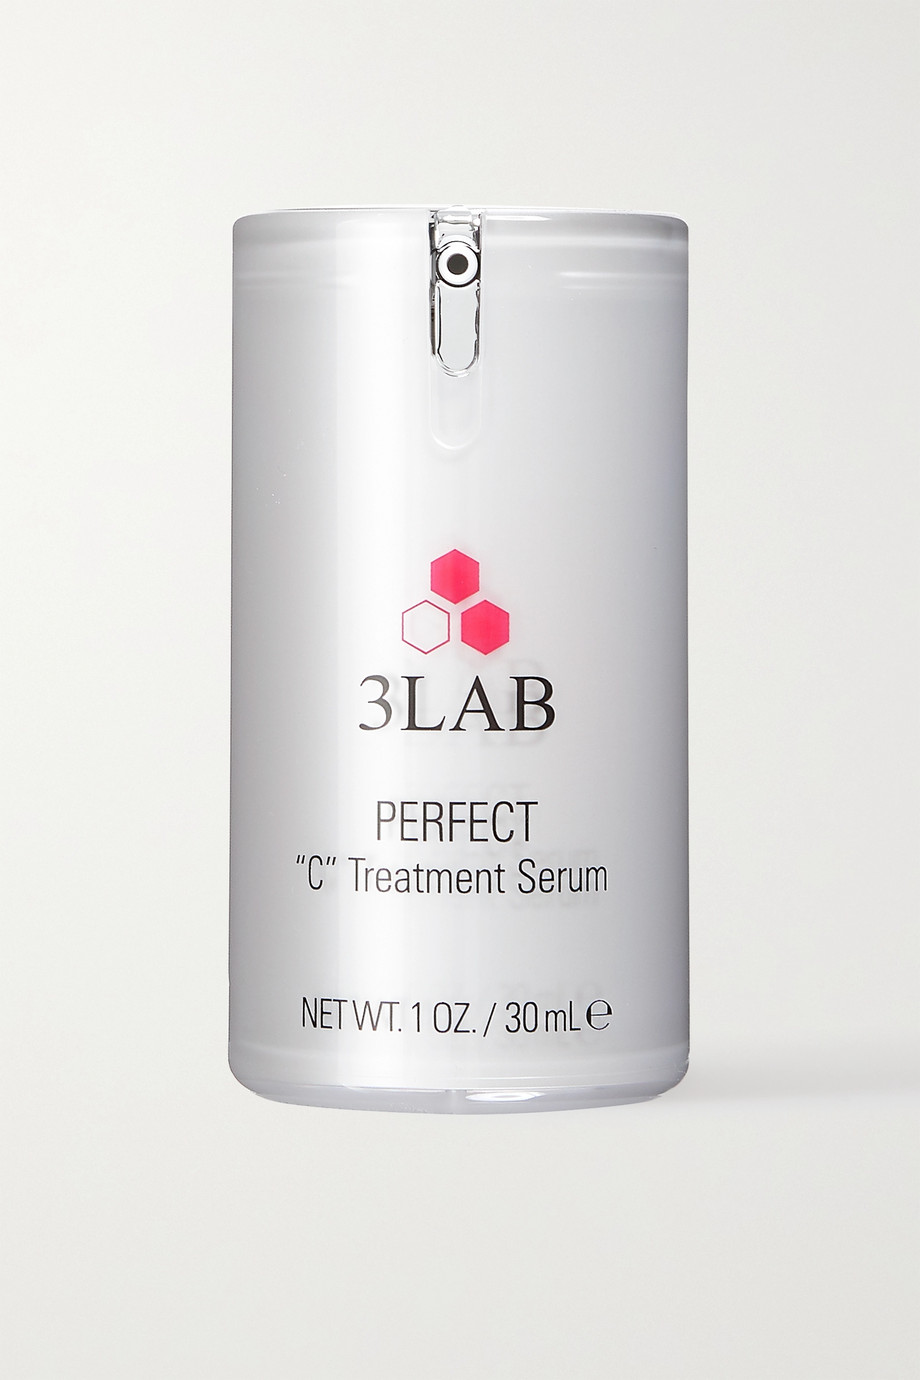 3LAB Perfect C Treatment Serum, 30ml